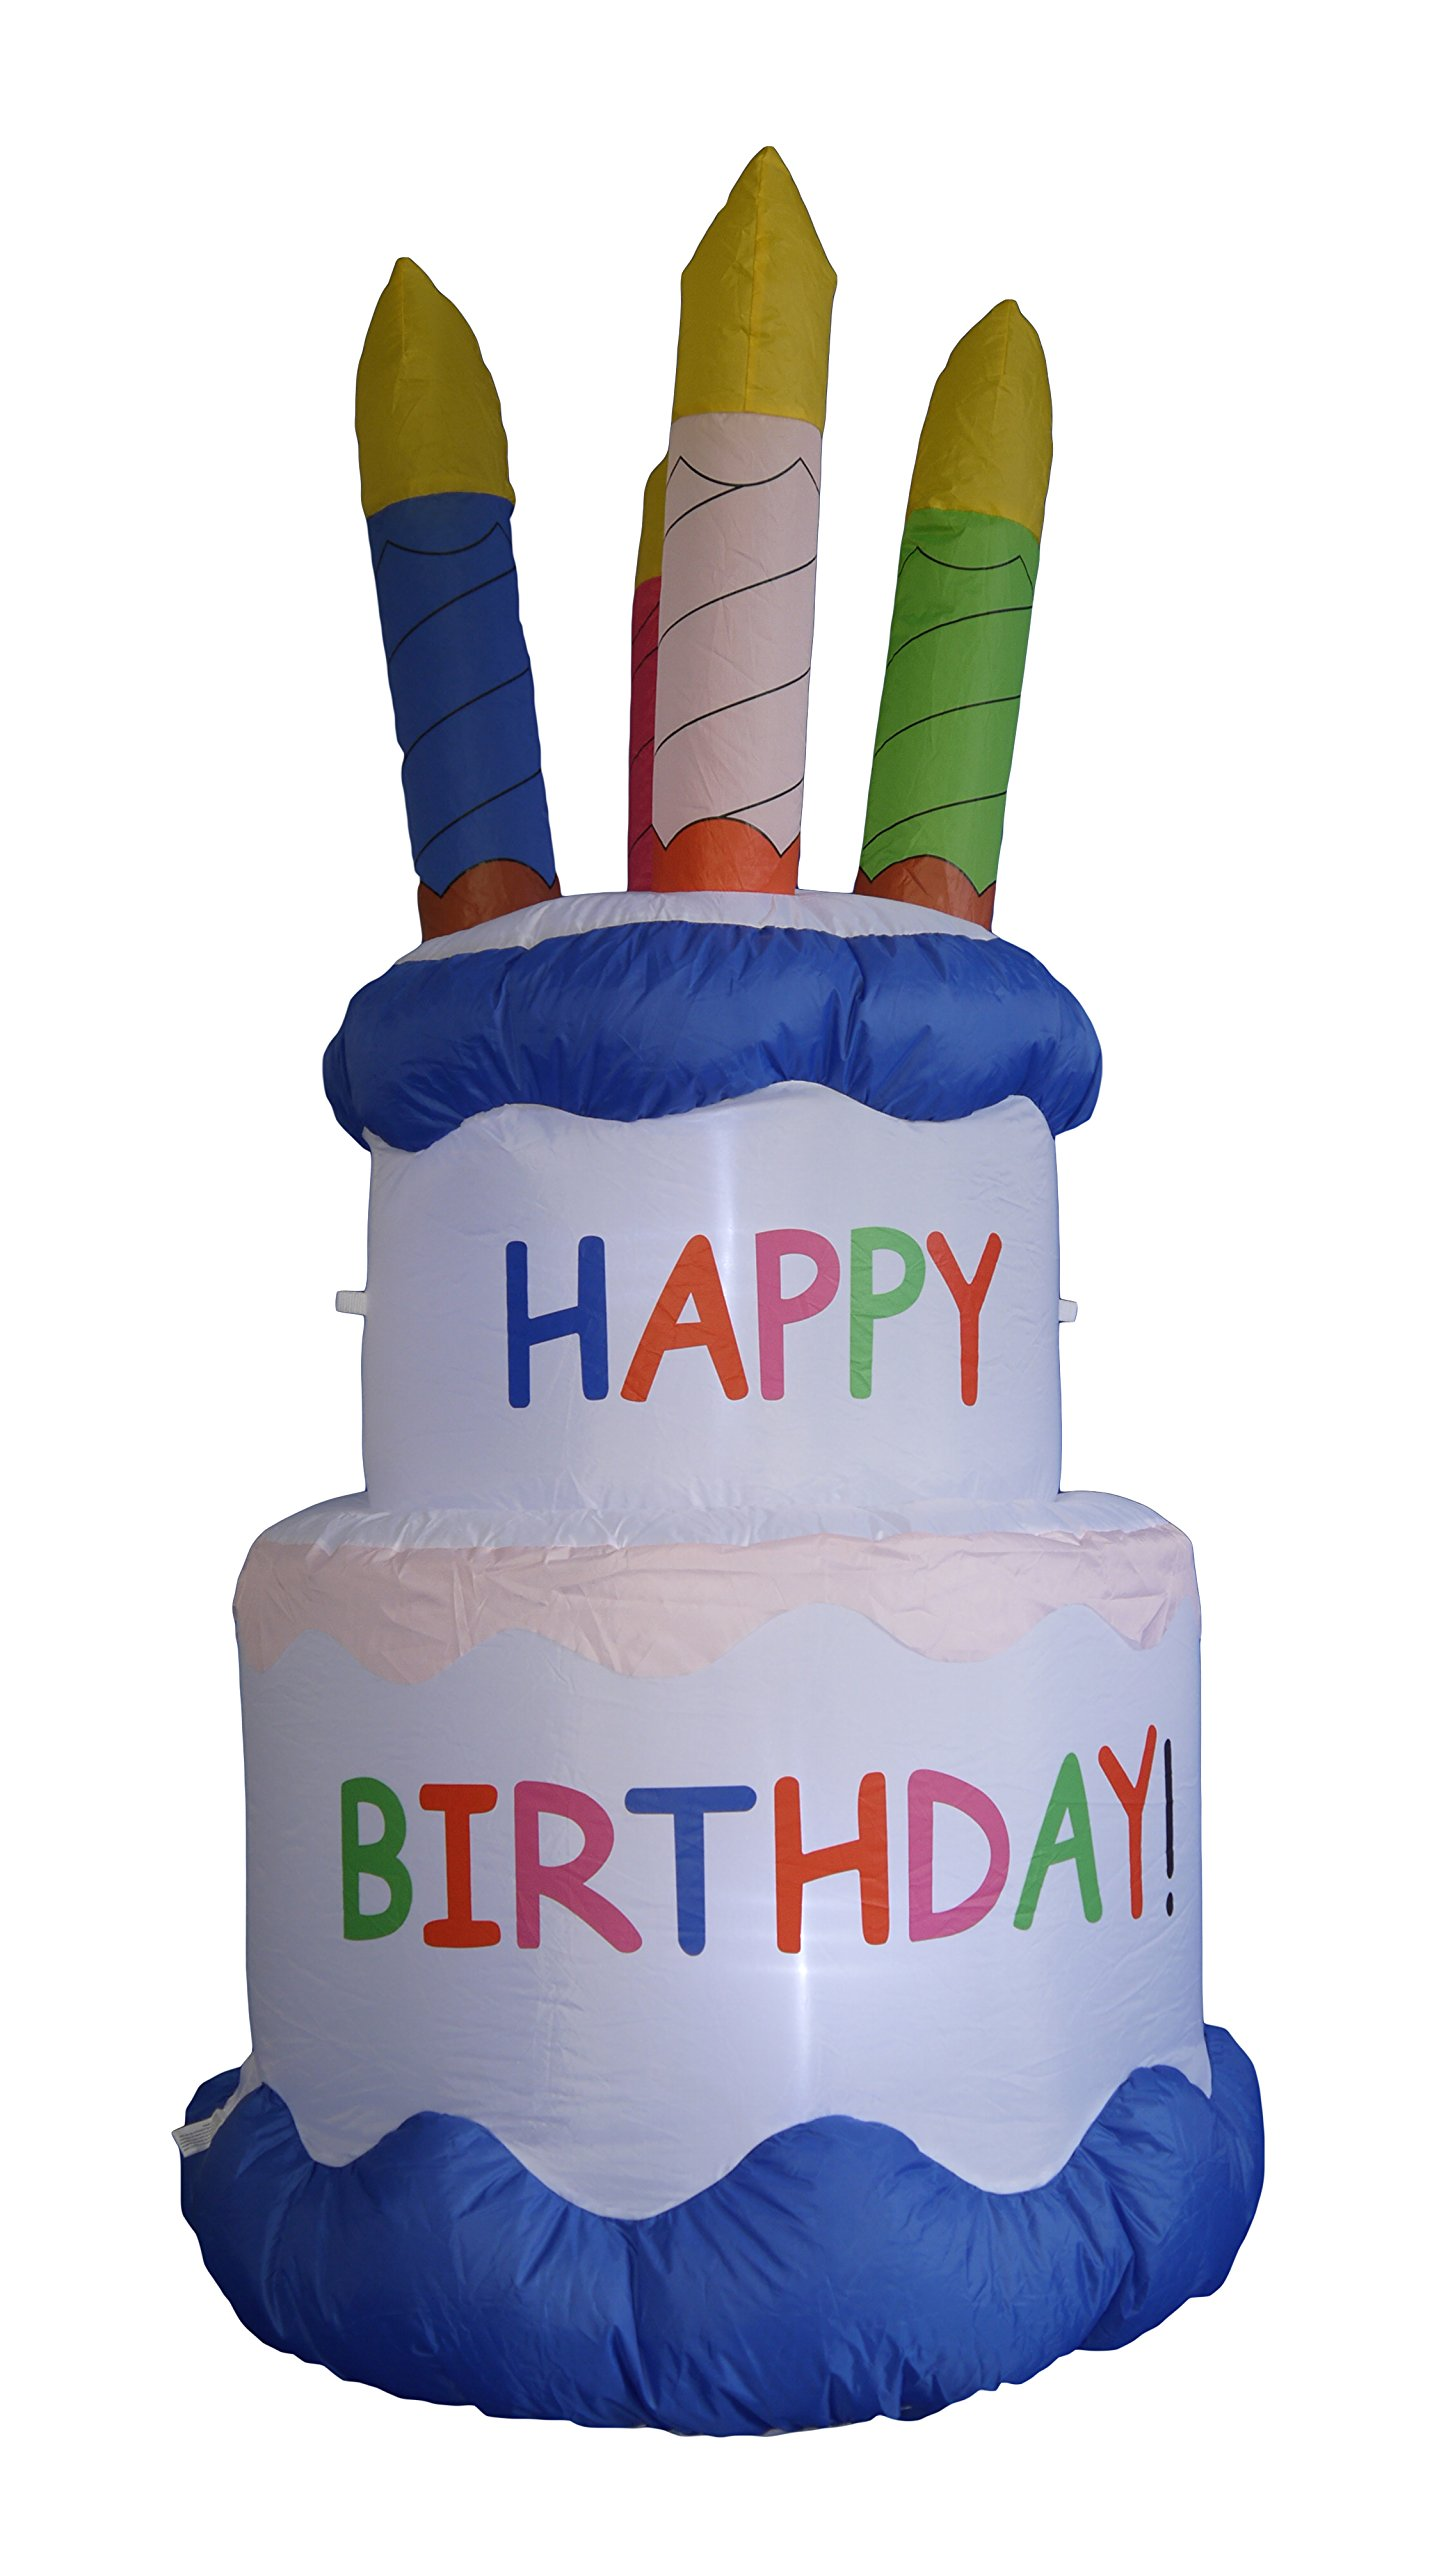 6 Foot Inflatable Happy Birthday Cake with Candles Yard Decoration by BZB Goods (Image #3)